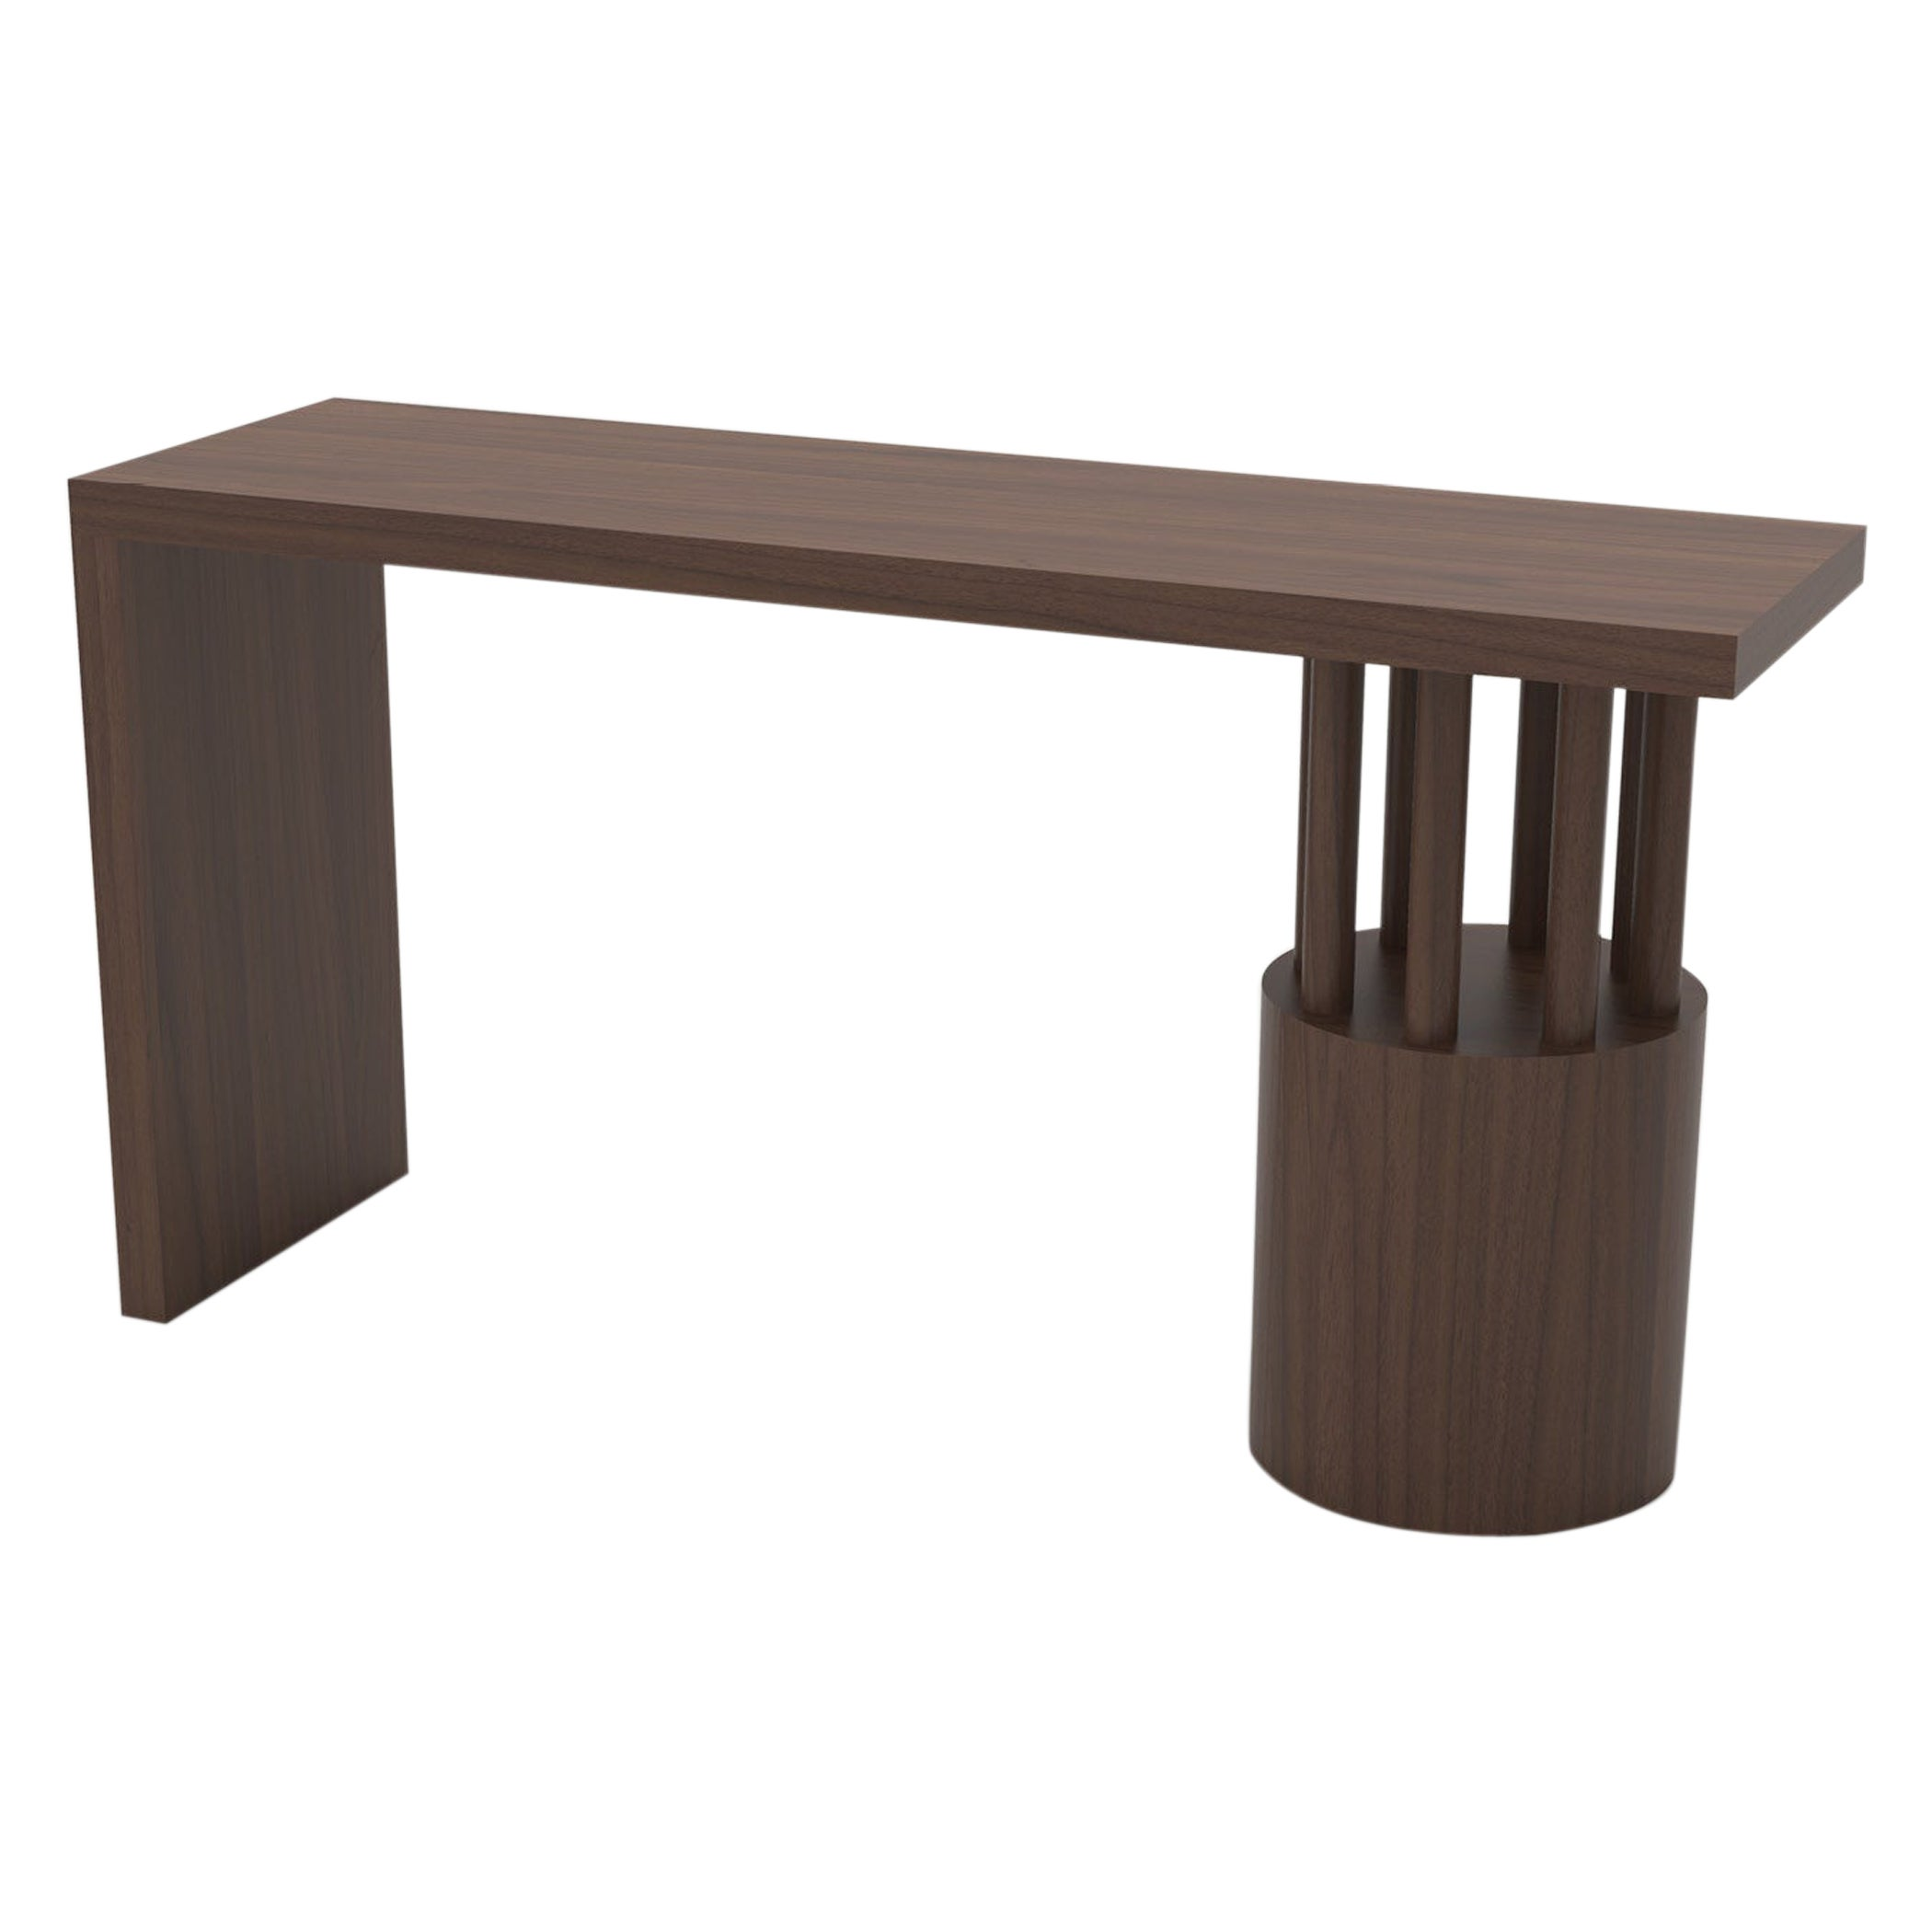 Wood Console Table with Solid Top and Round Base with Posts